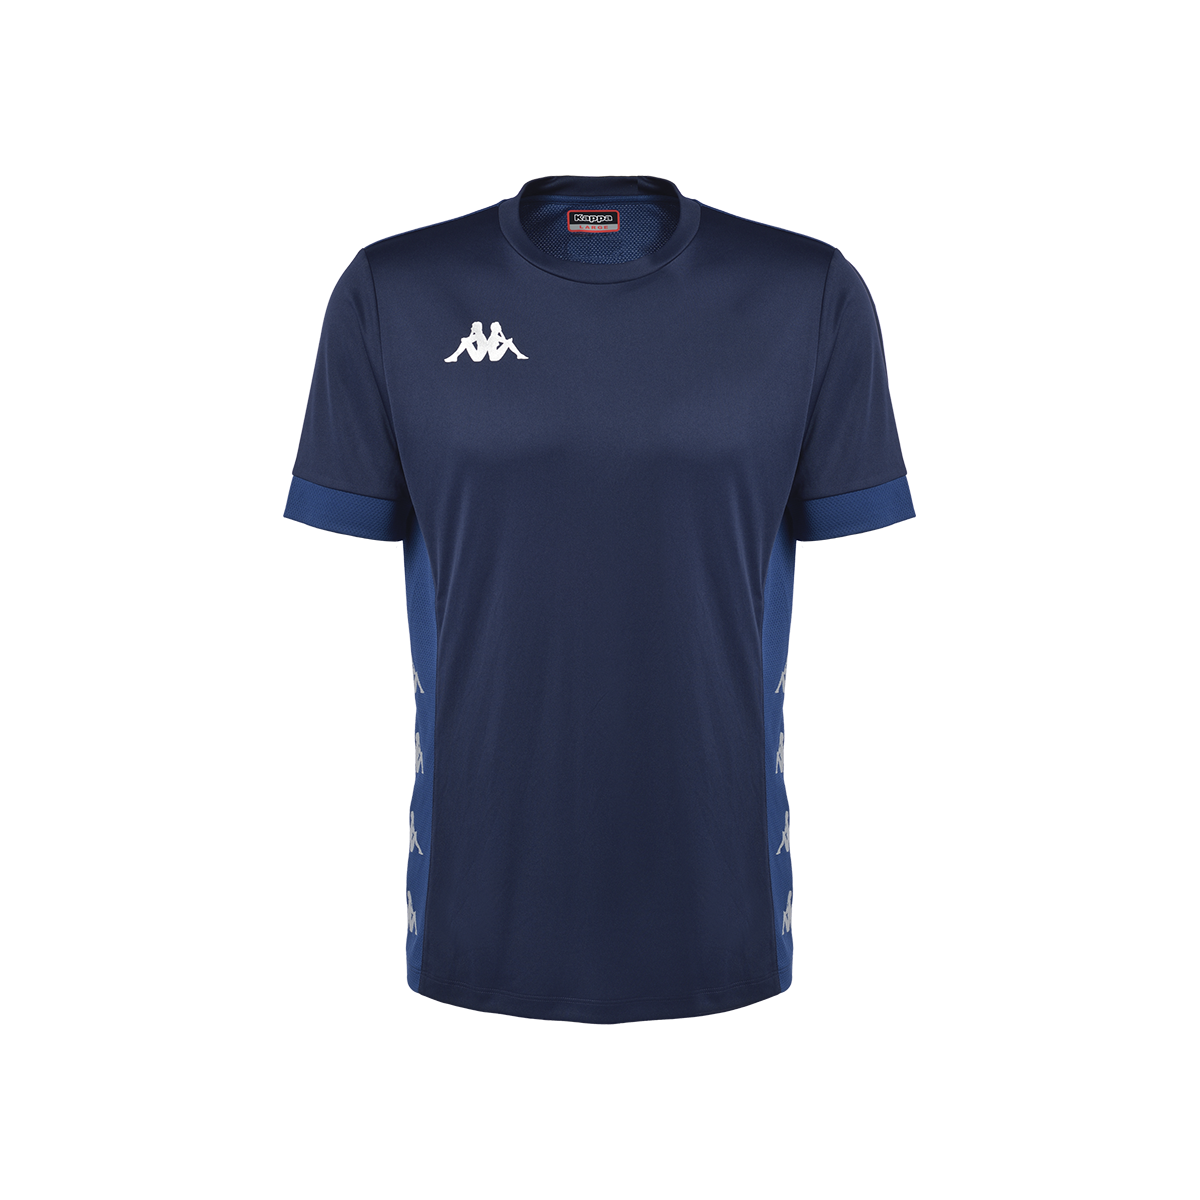 Kappa Dervio Match Shirt SS - Blue Nautic/Blue MD Cobalt